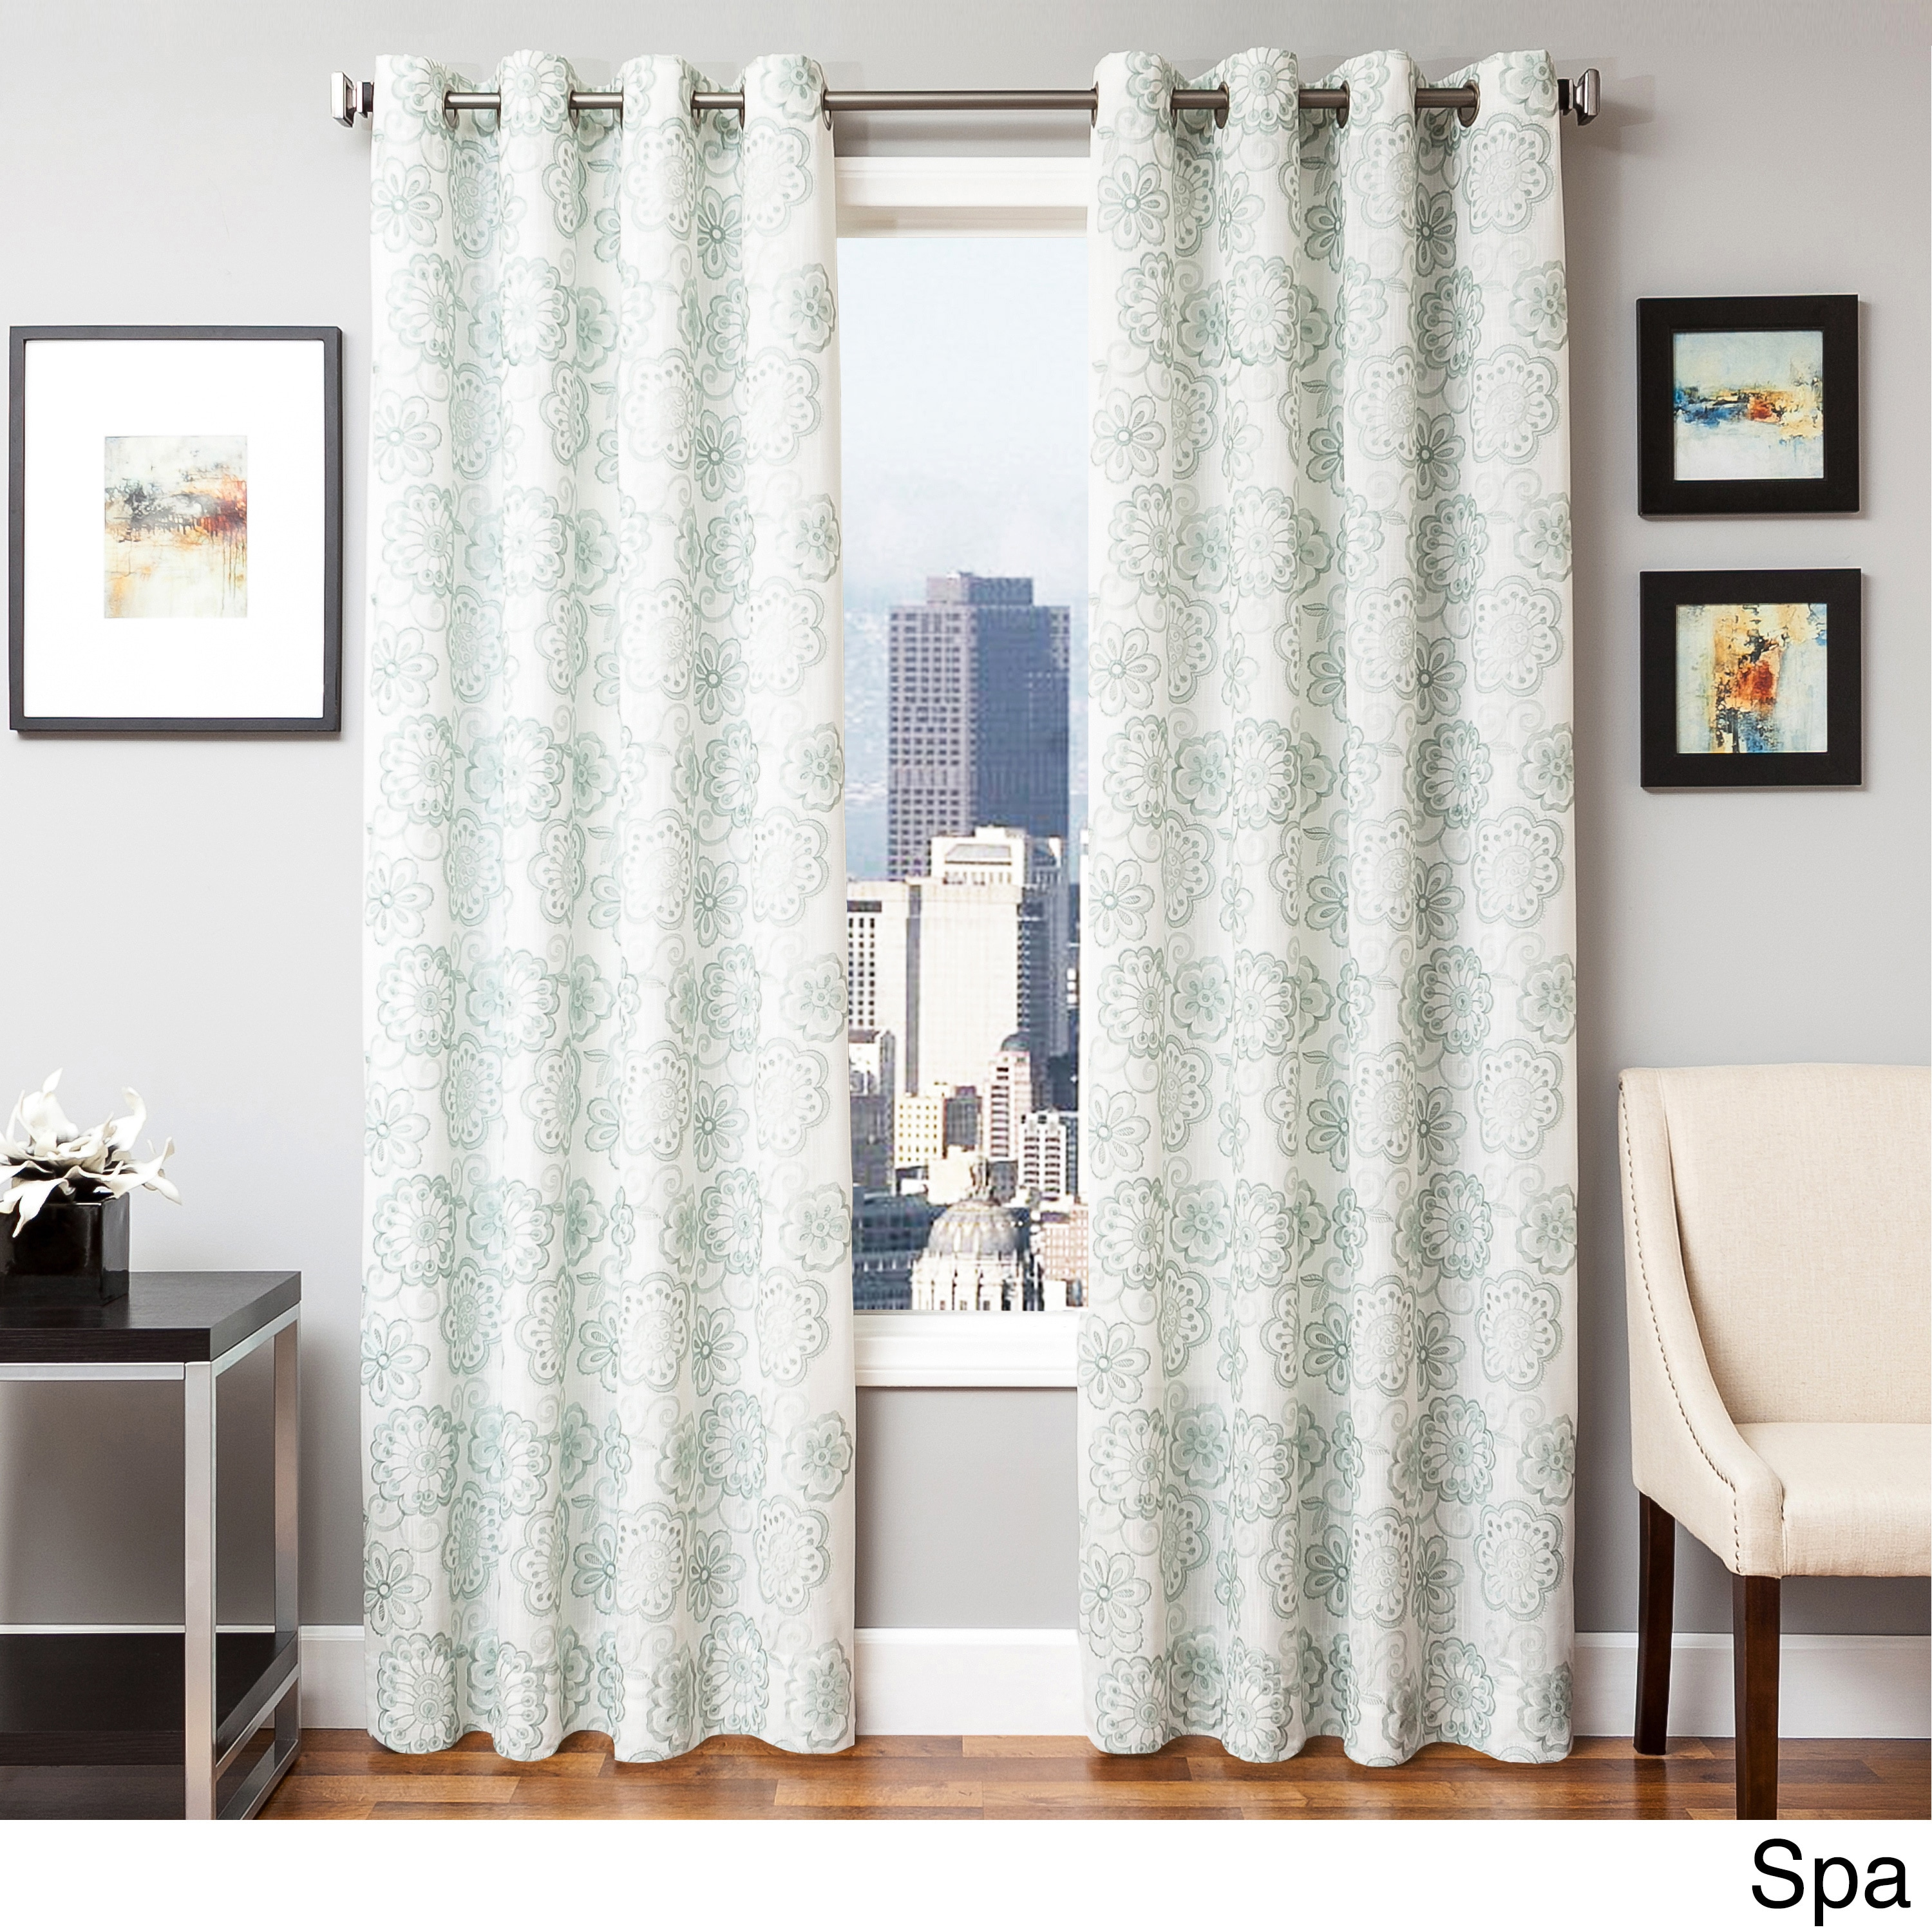 want have gray you them measure not pin and s drapes how size orange bandana same the white all valance to were so tall curtain denim